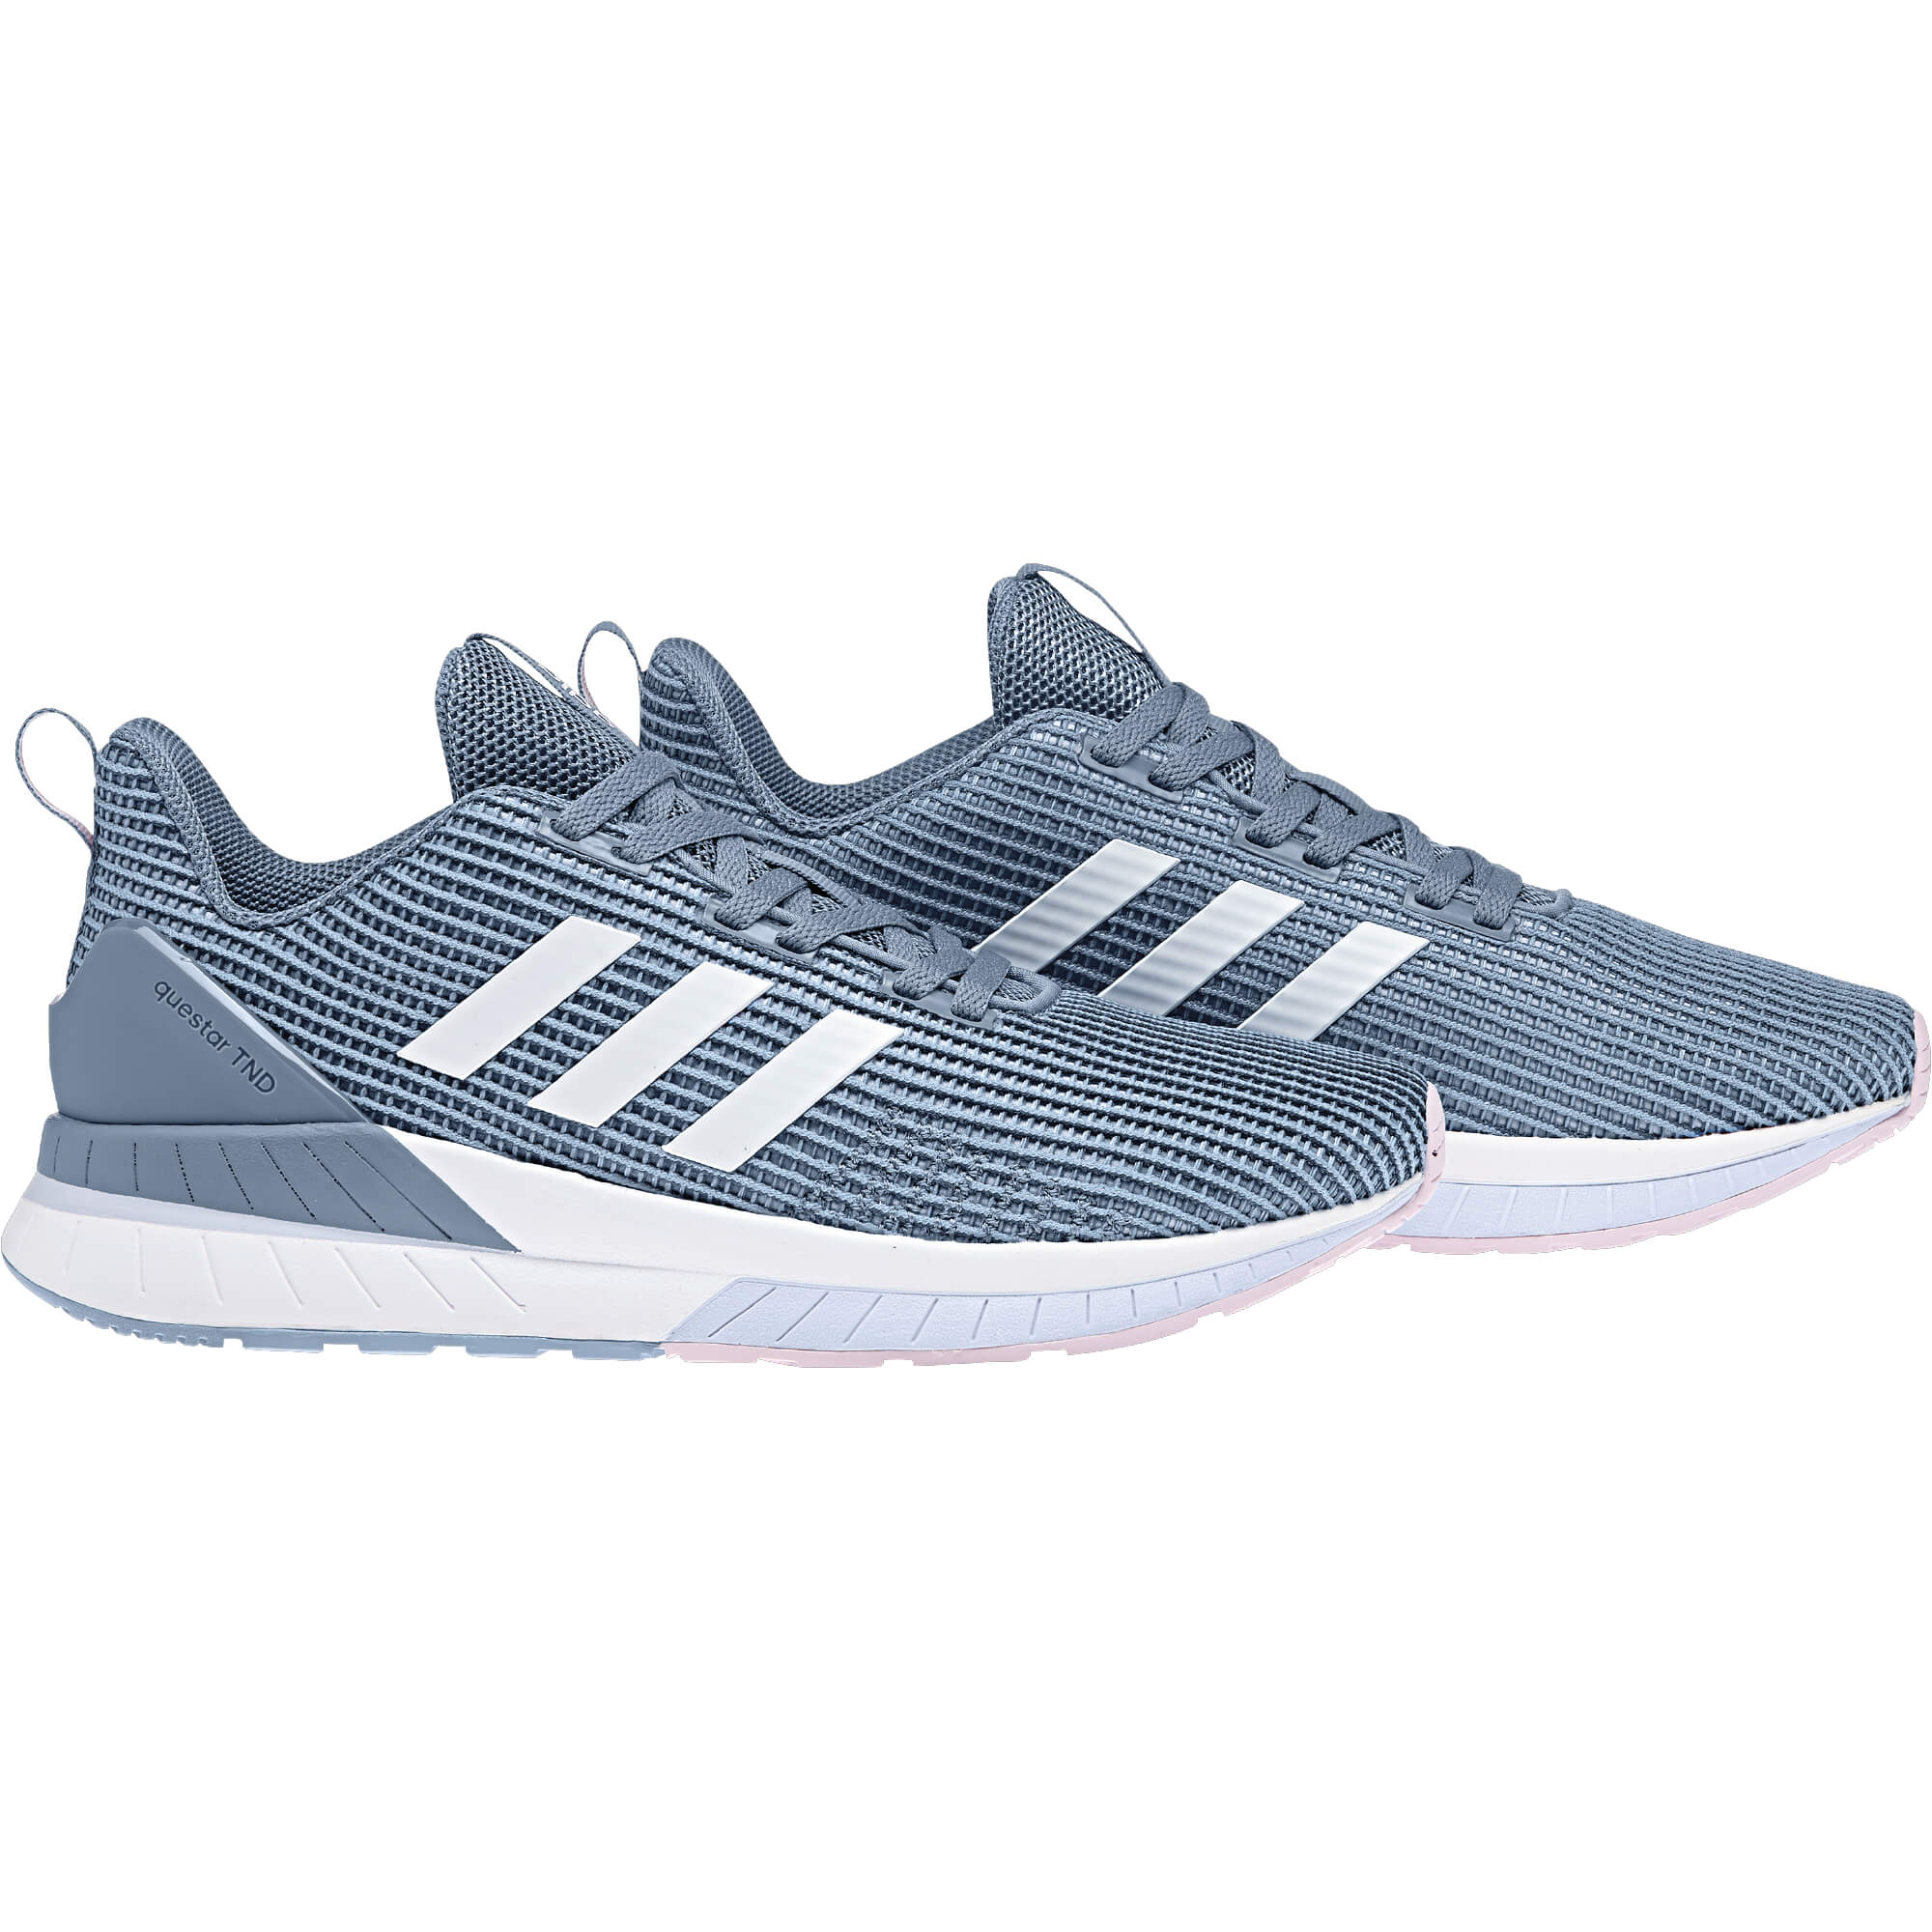 the latest 63363 d0f23 adidas Questar TND, vel. 38 2 3